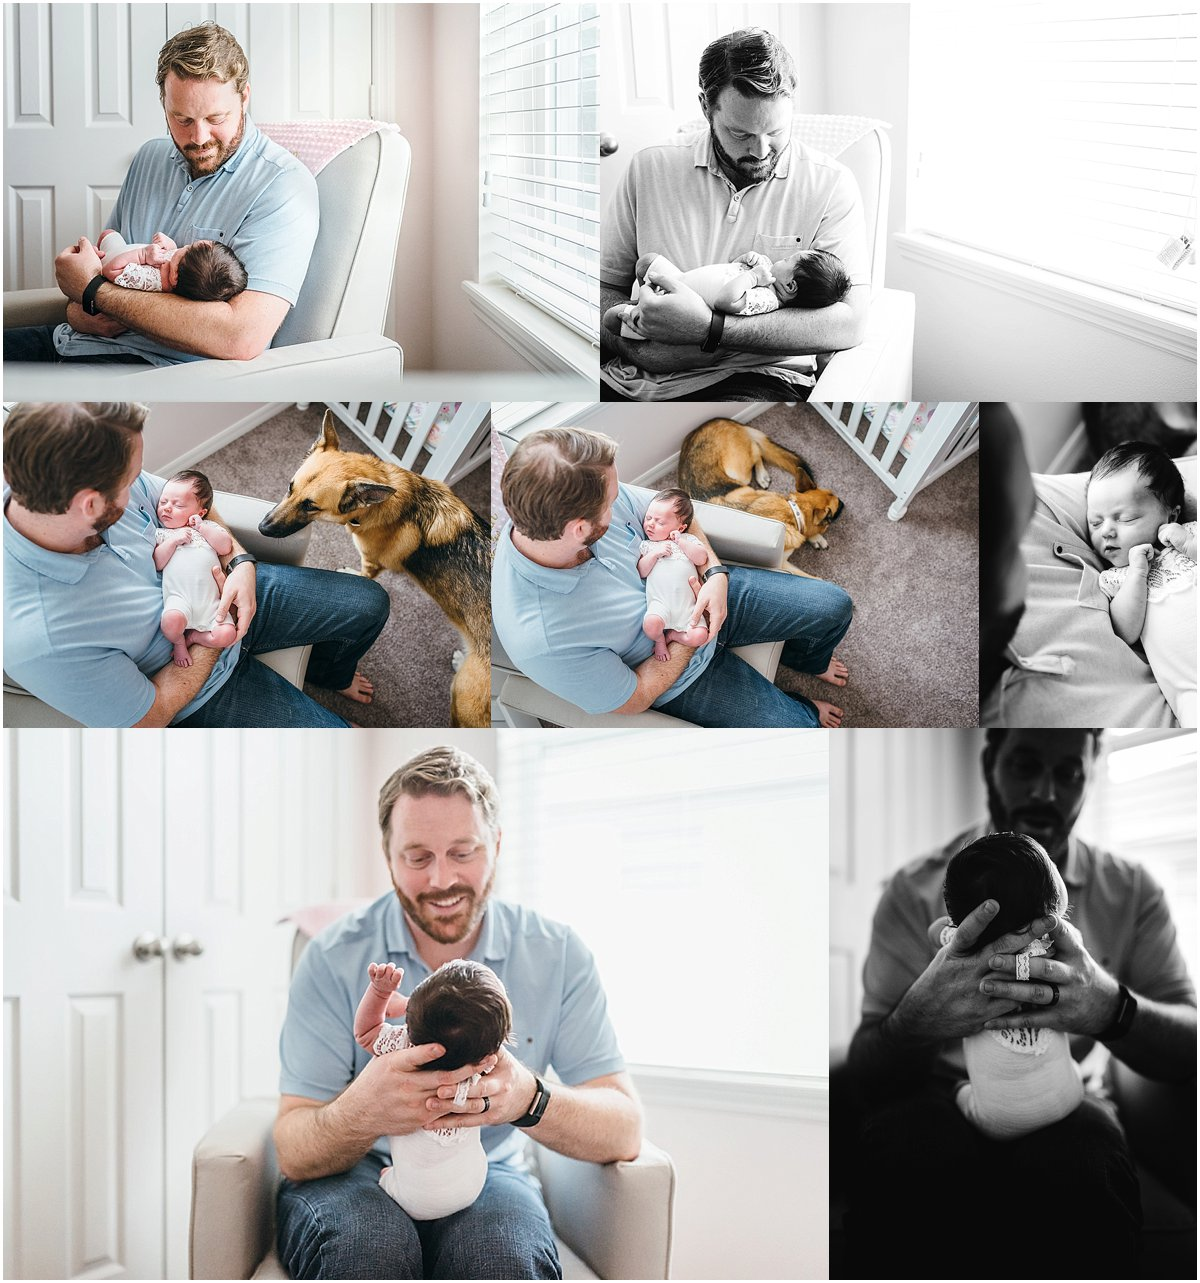 Ashley_Rogers_Photography_Orlando_Non-Posed_Newborn_Family_Lifestyle_Photographer_0886.jpg